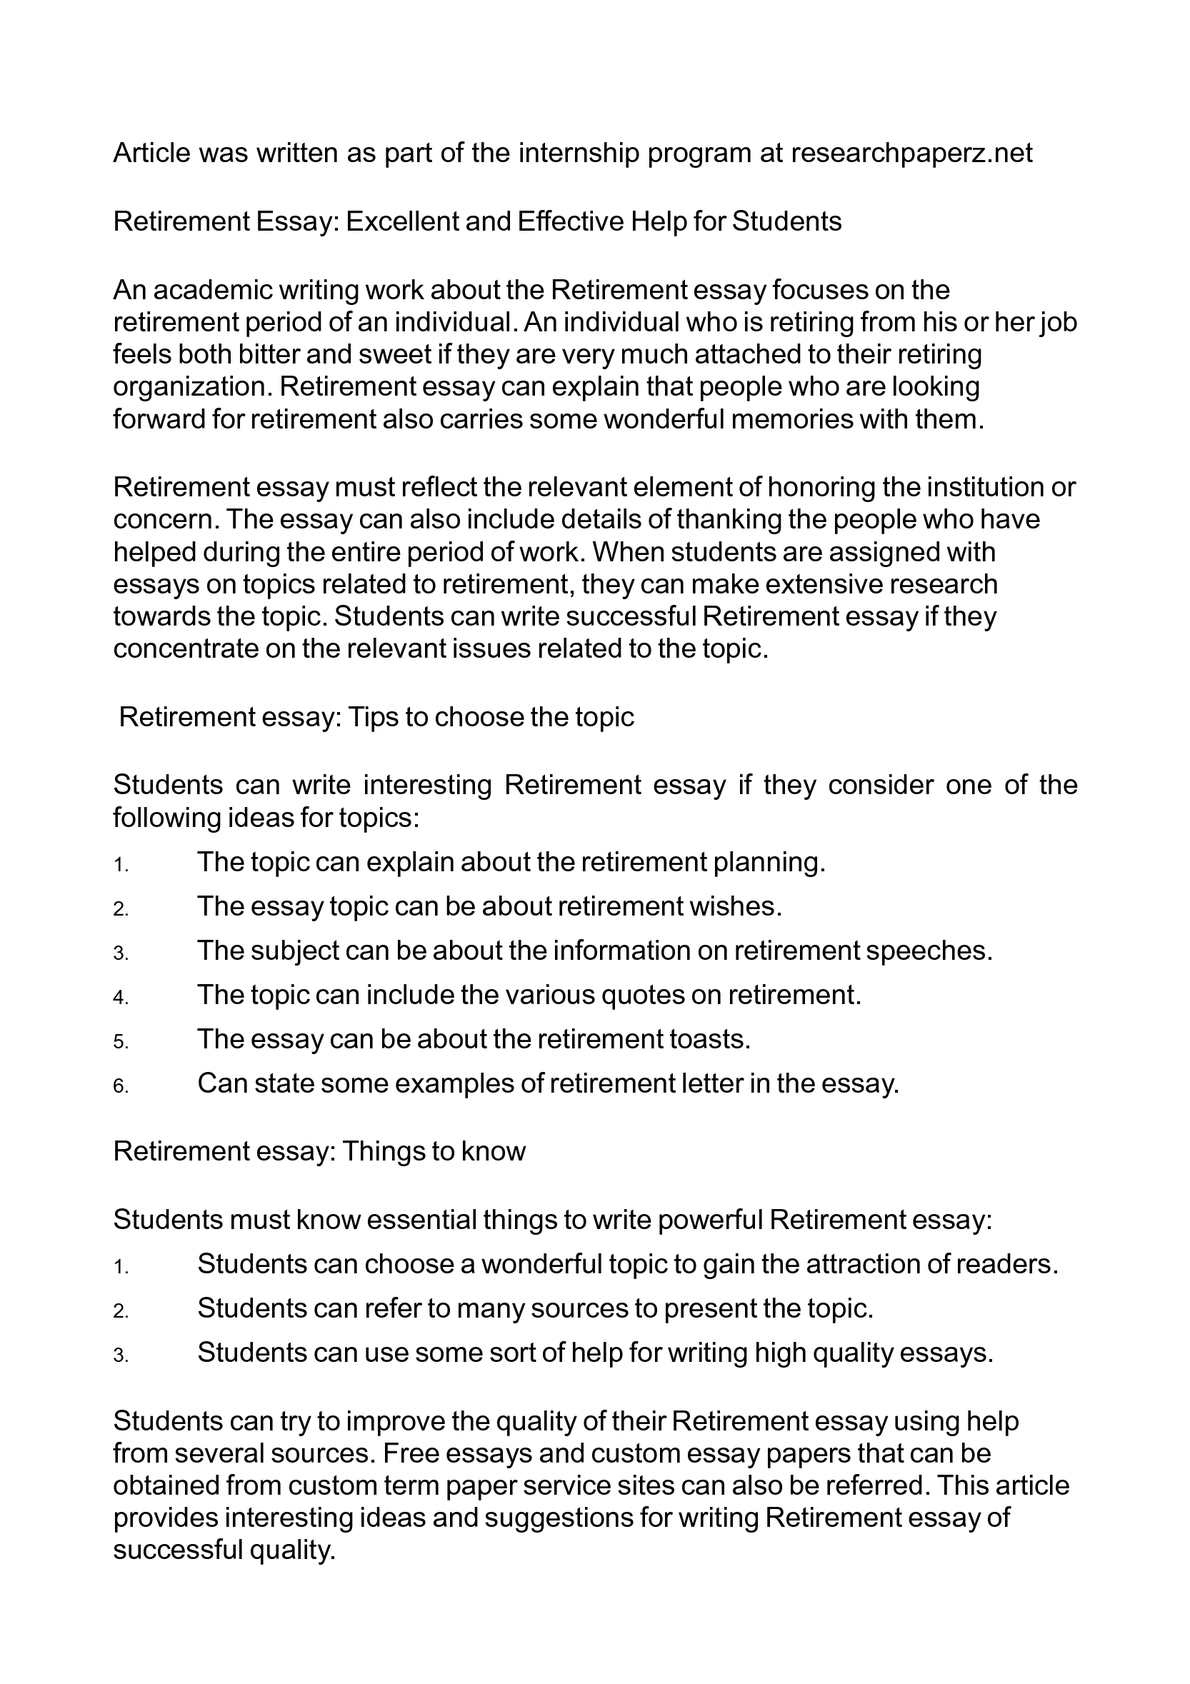 calamo retirement essay excellent and effective help for students